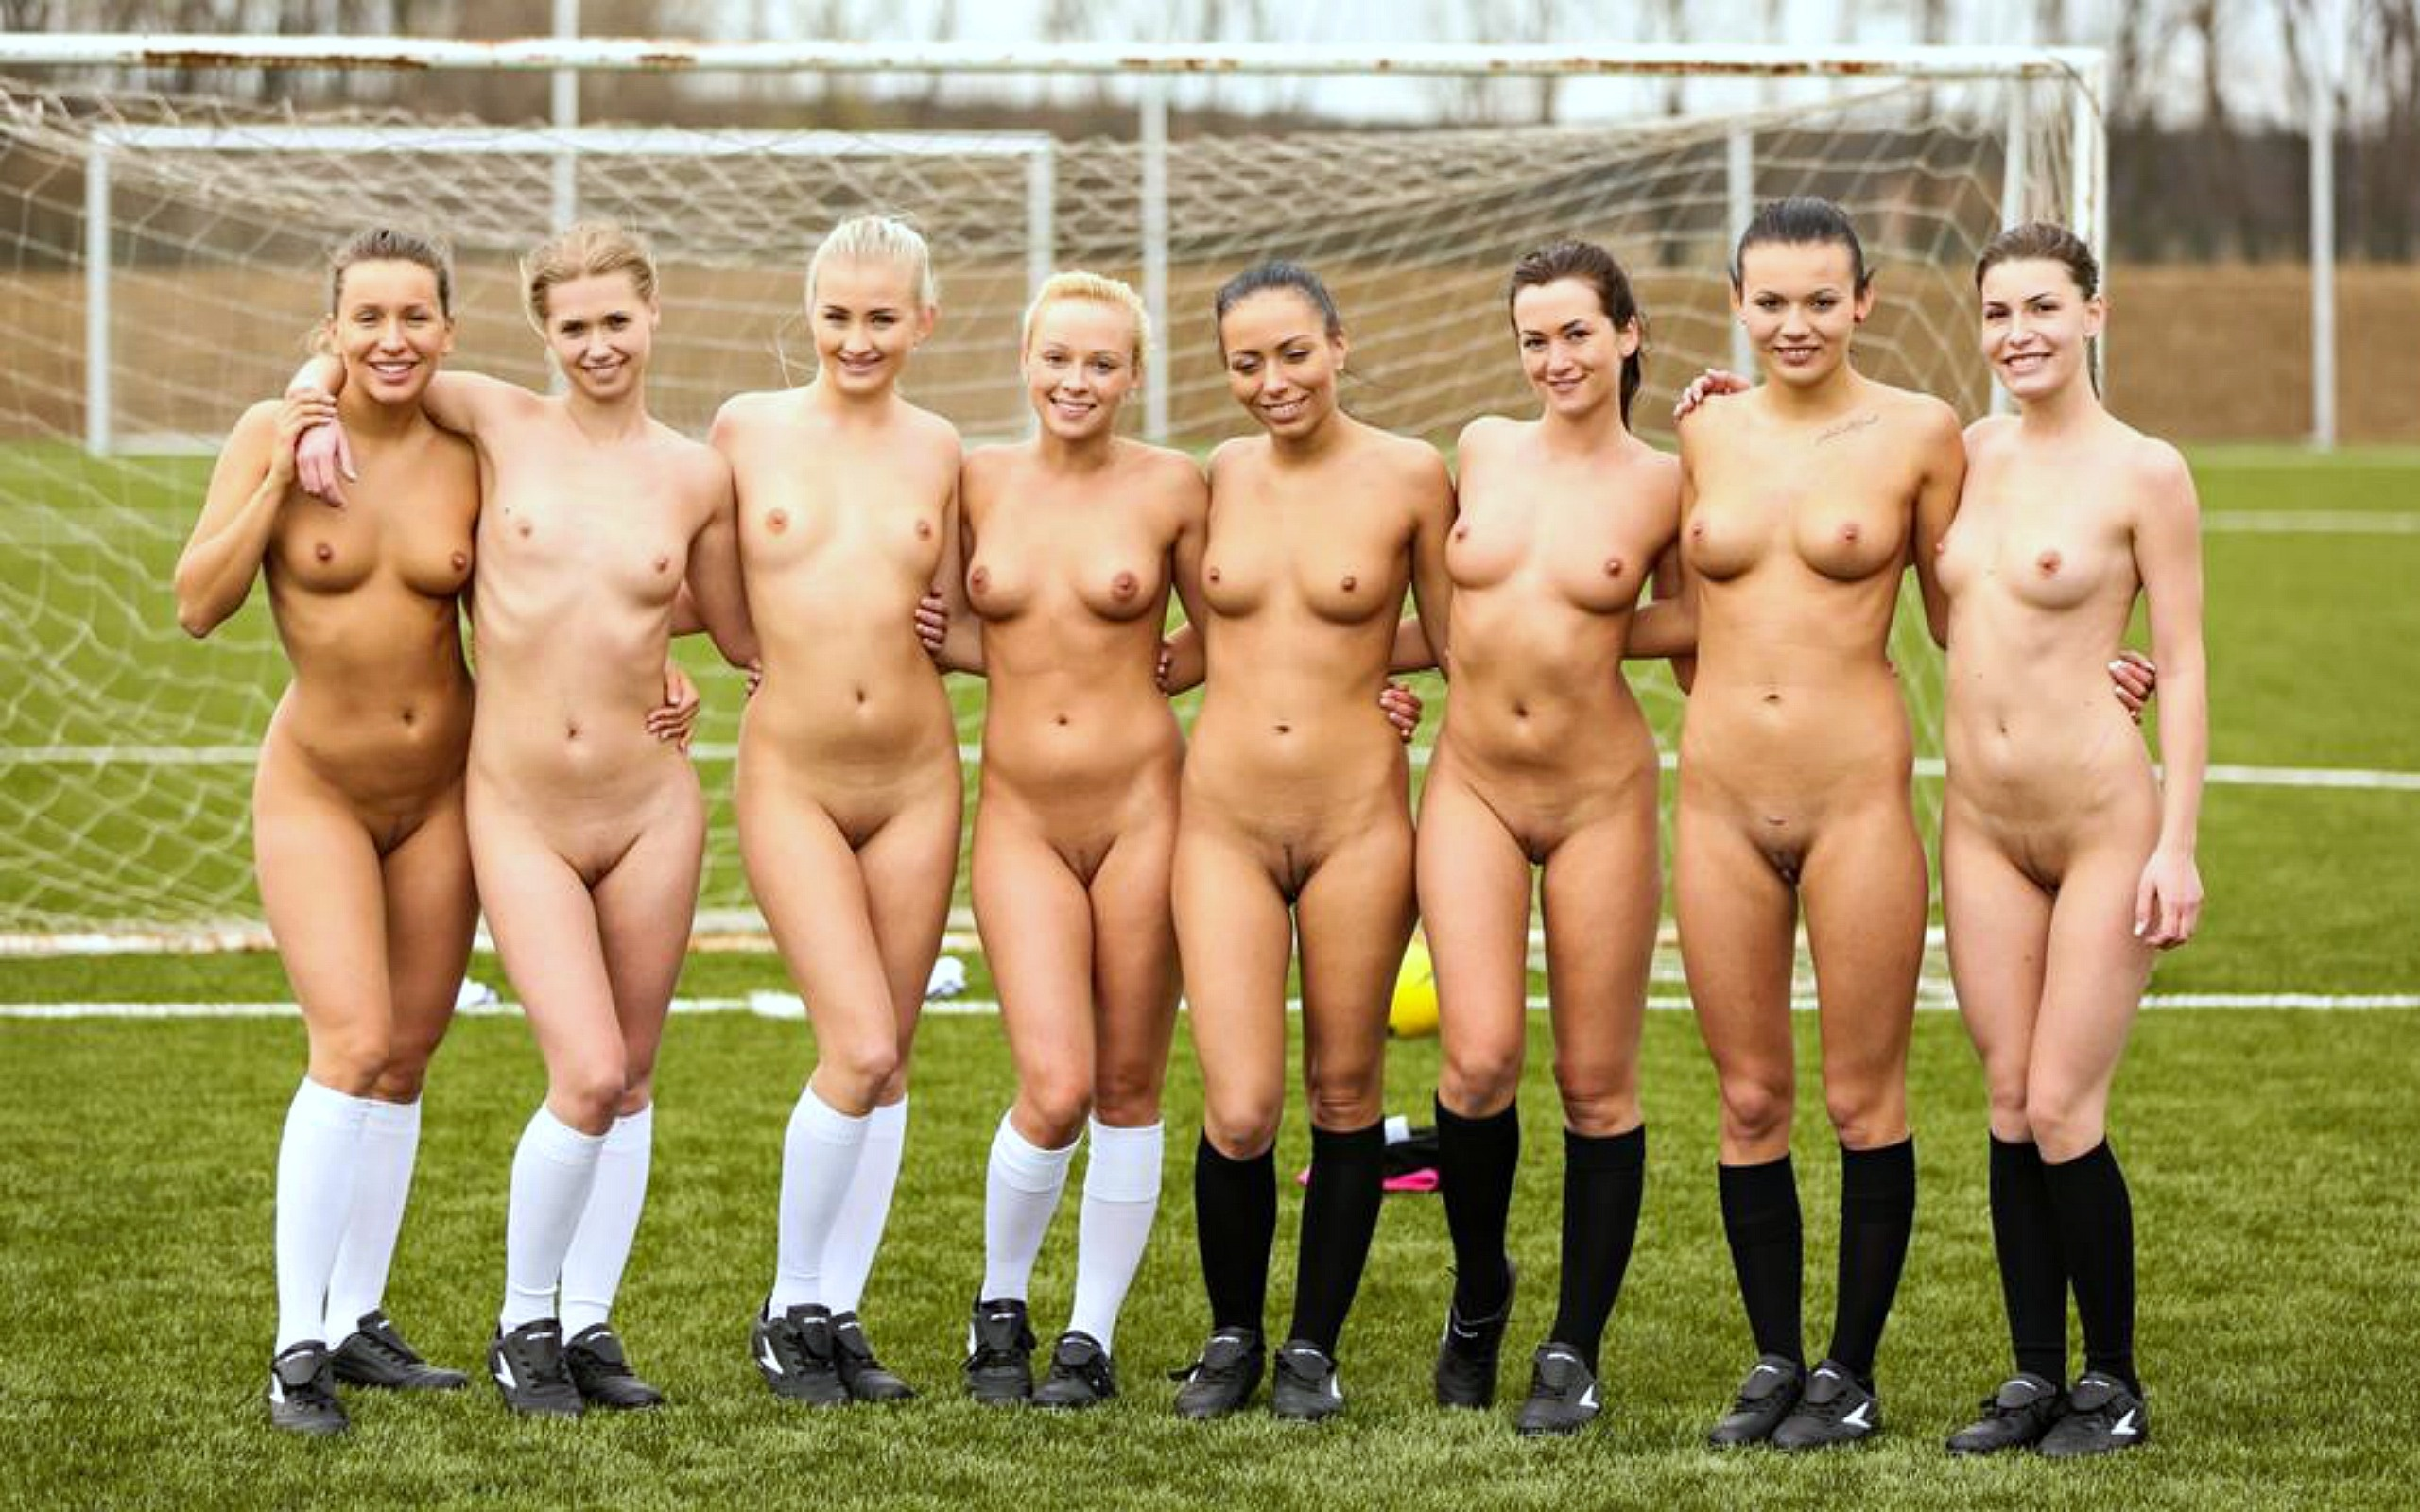 from Paxton nude girl with football